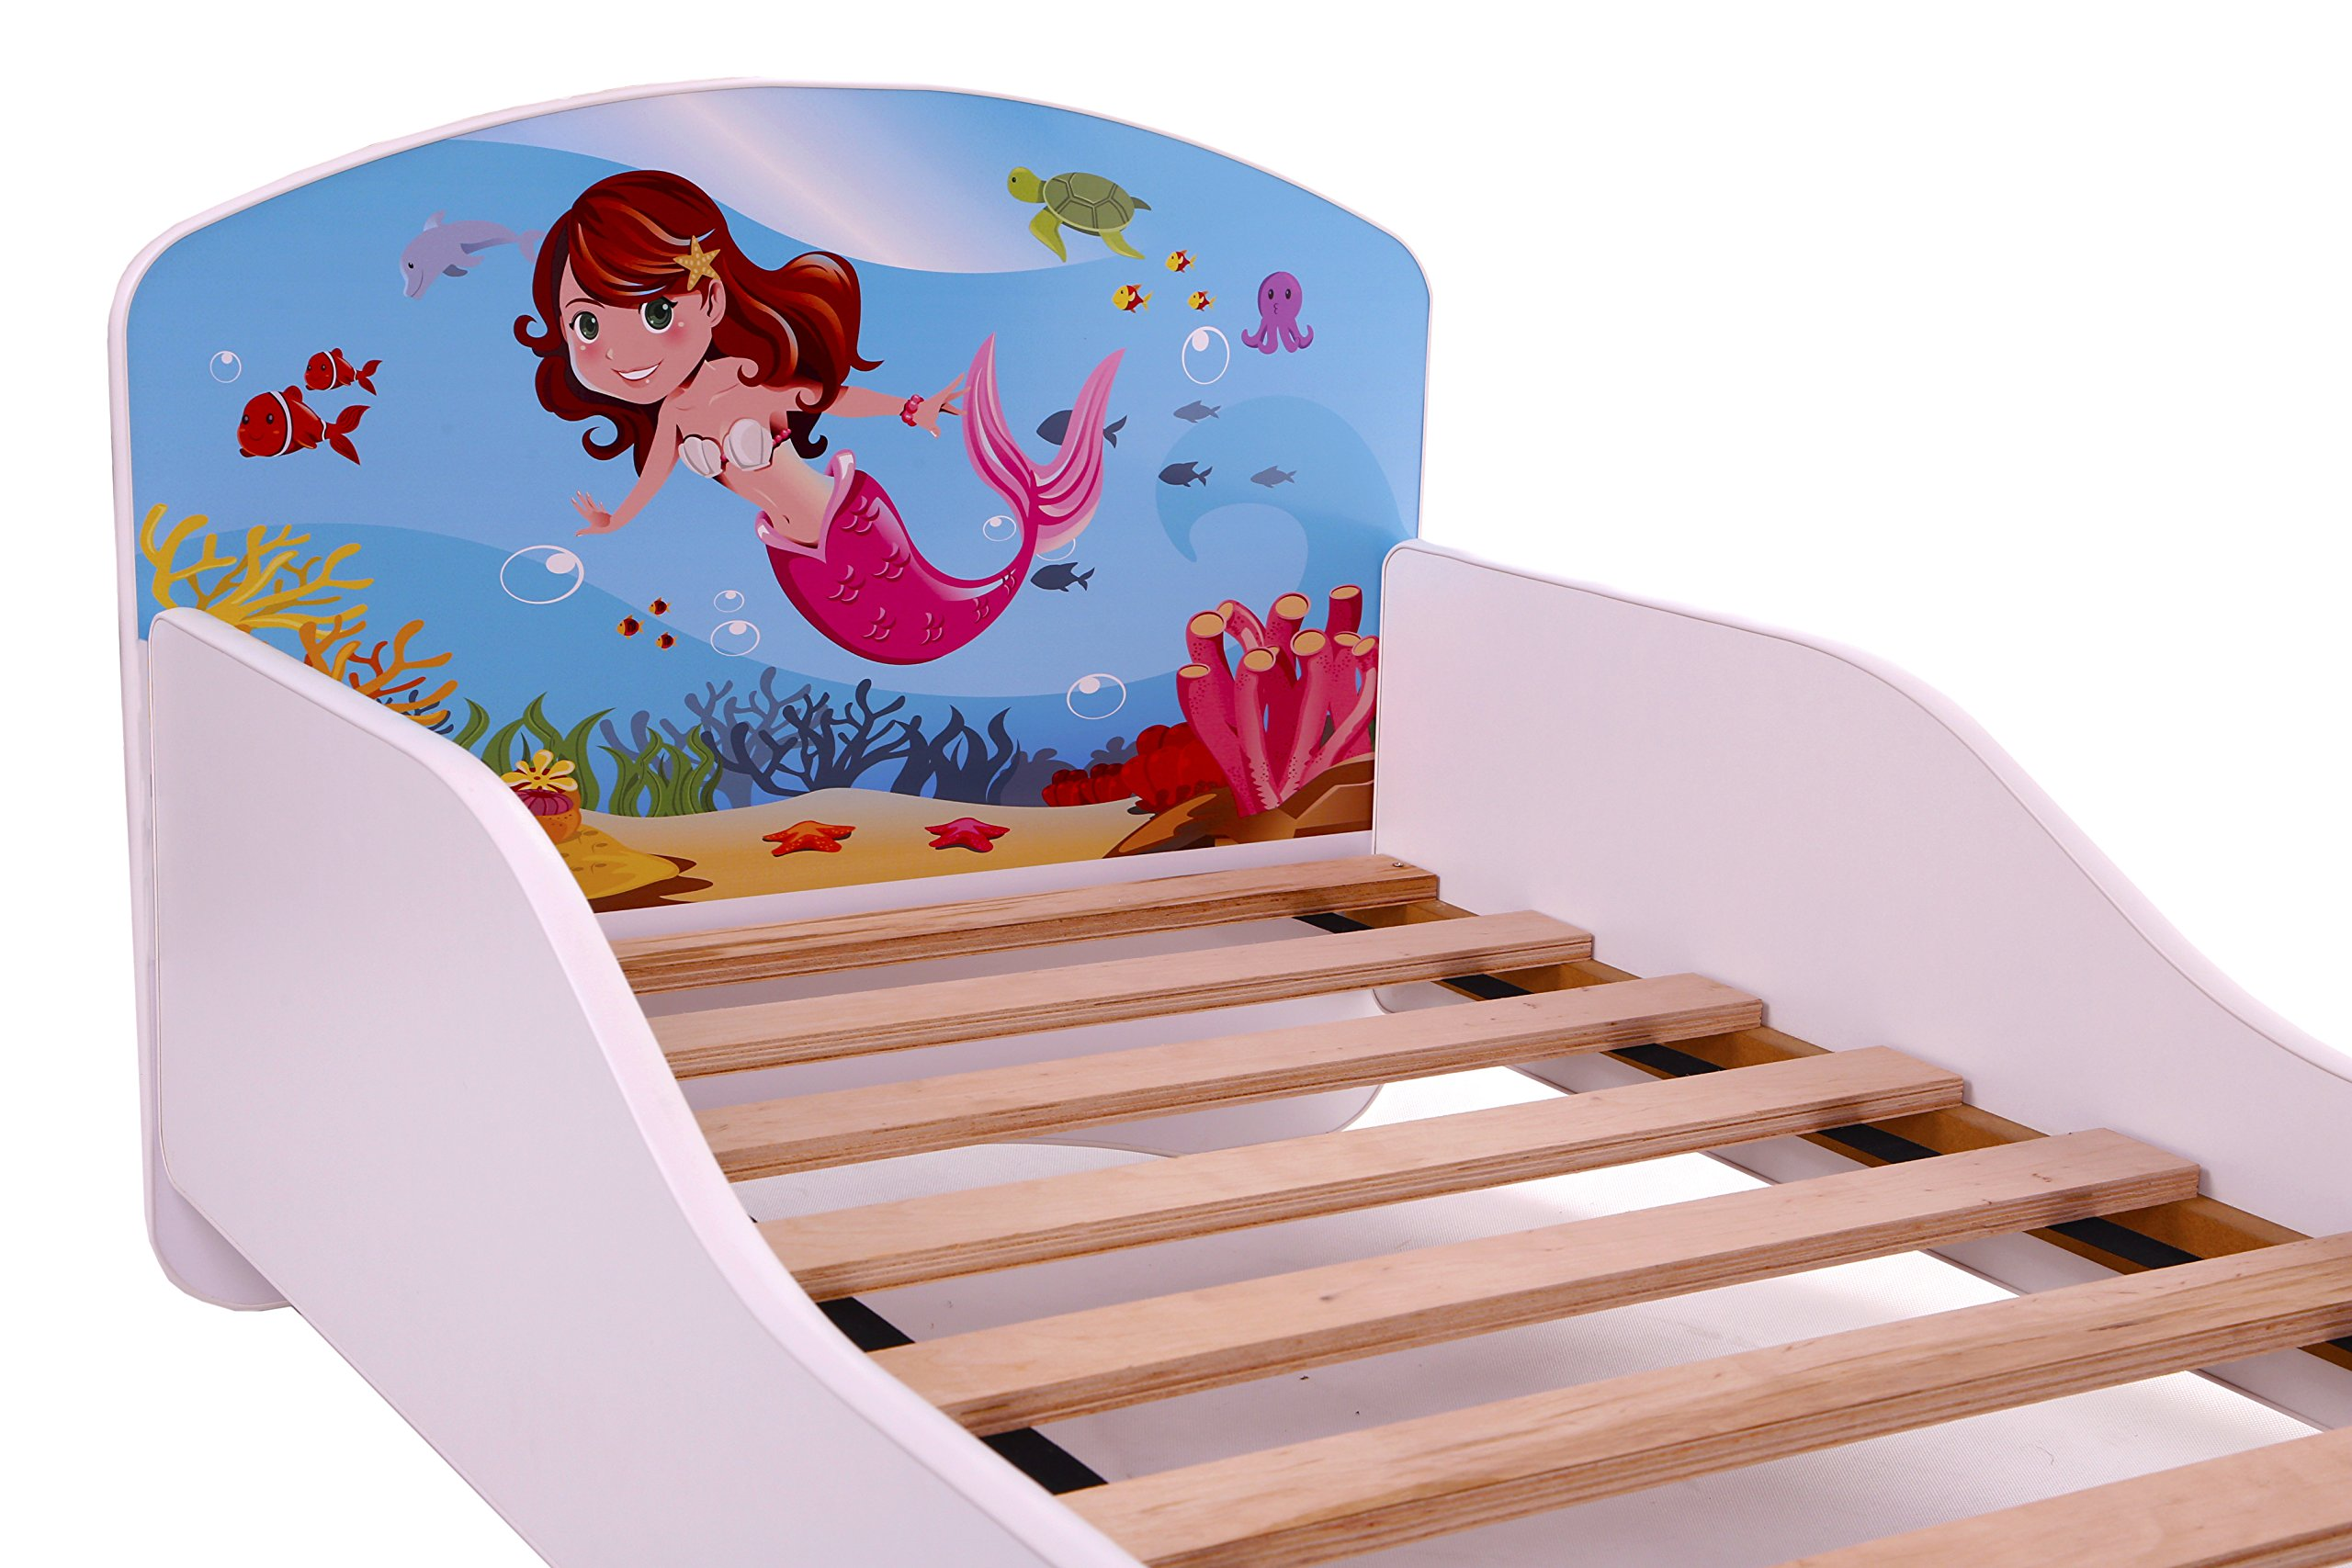 CHILDREN TODDLER KIDS BED + FREE MATTRESS ACMA I WHITE ... 140x70 160x80 180x80 40 Designs (09 Mermaid, 140x70 cm + drawer)  ACMA